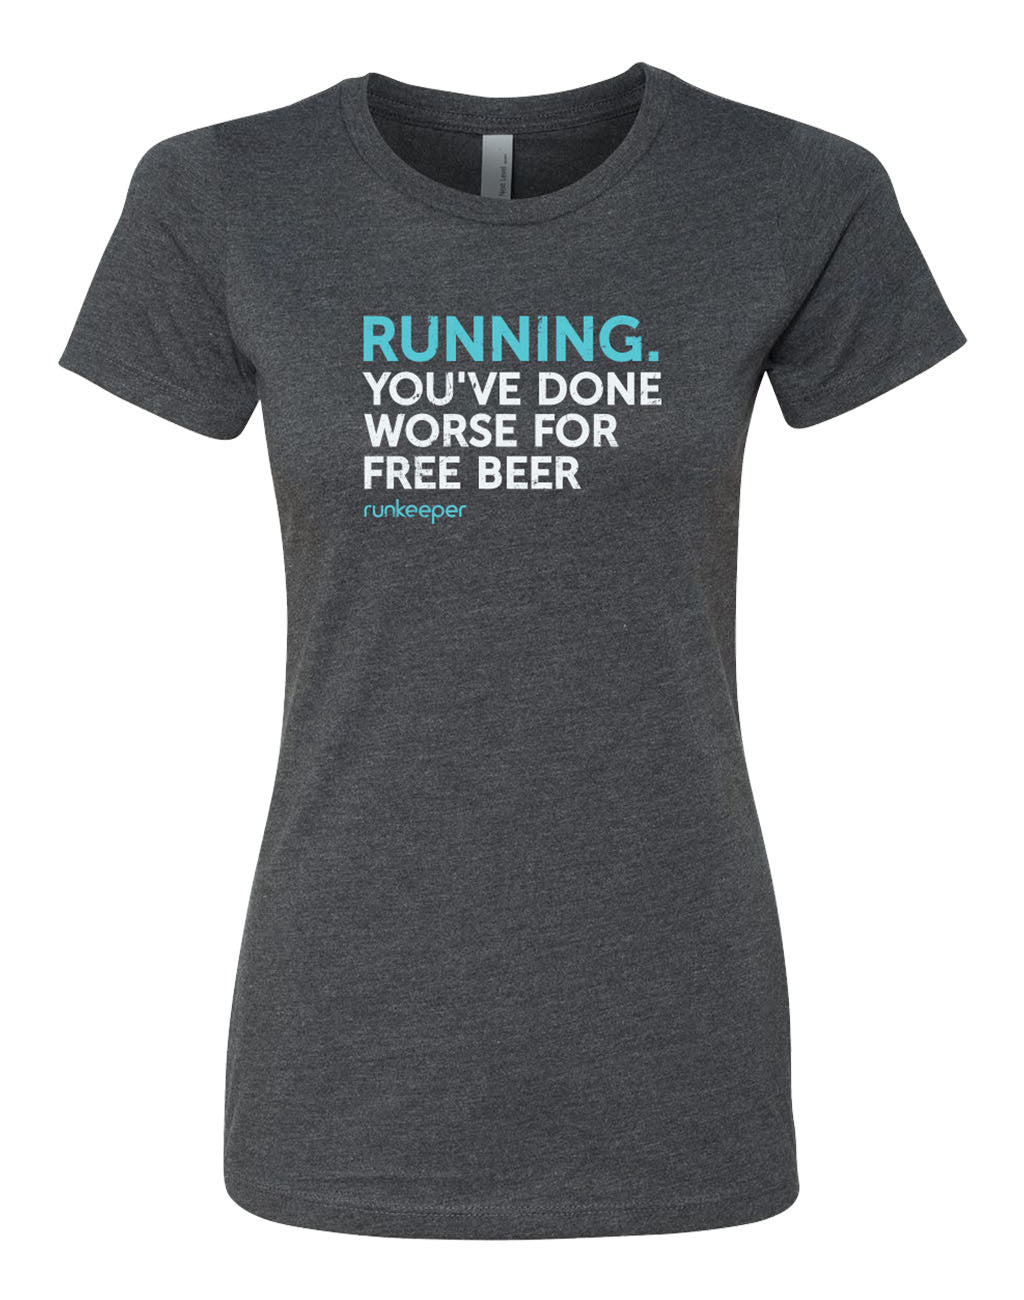 Runkeeper You've Done Worse for Free Beer TeeCharcoal_master_image